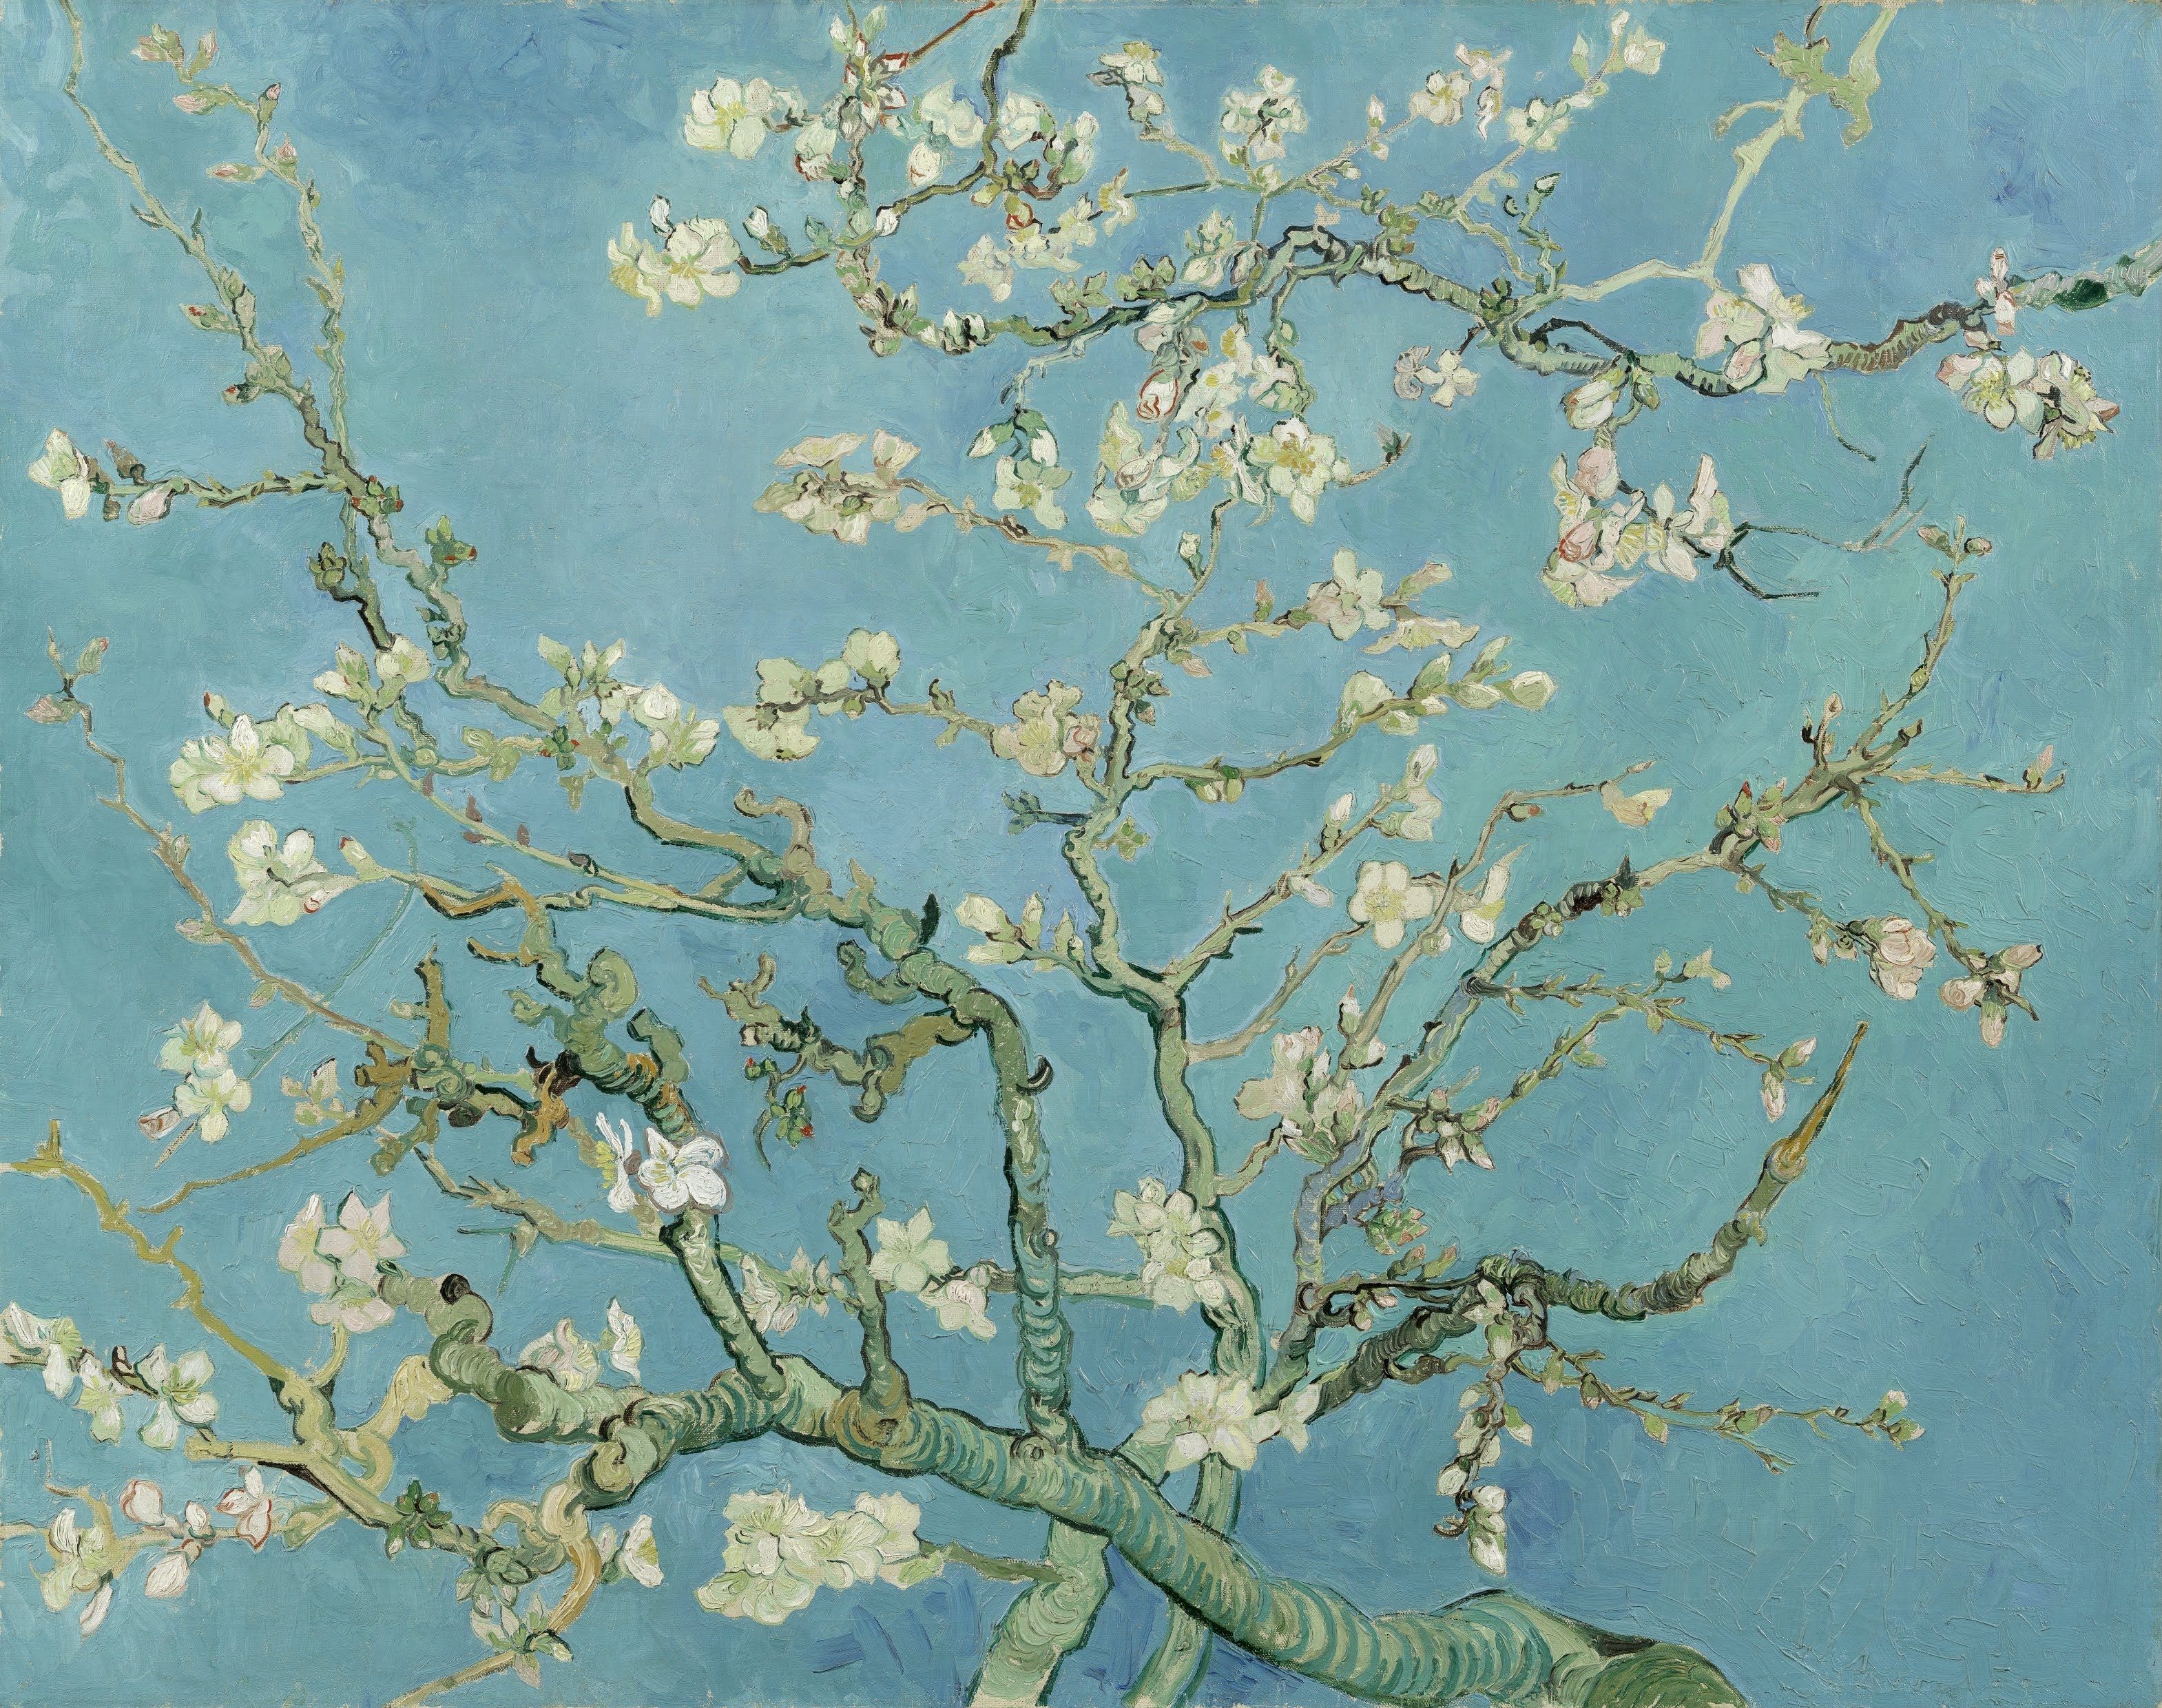 File:vincent Van Gogh – Almond Blossom – Google Art Project Within Most Recently Released Almond Blossoms Vincent Van Gogh Wall Art (View 10 of 20)